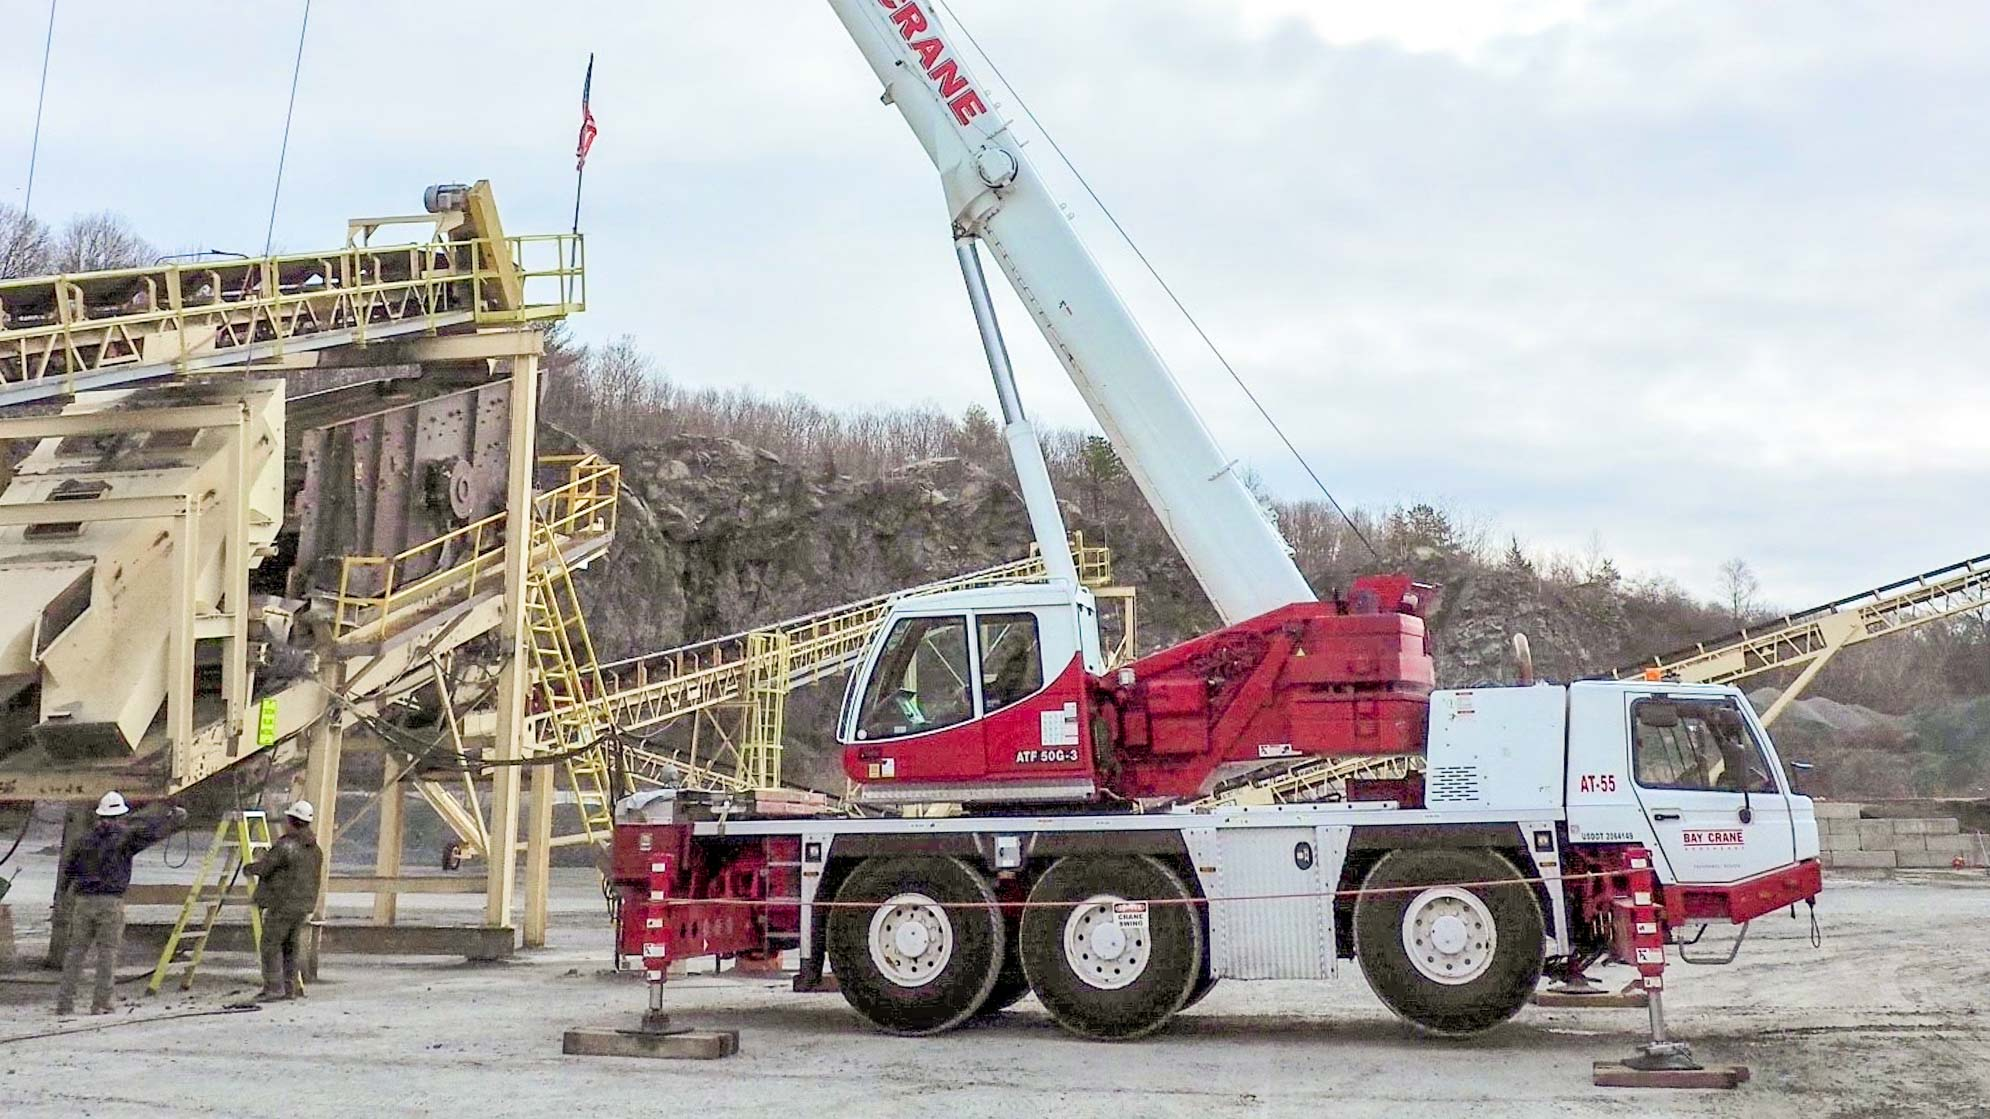 ATF 50G crane with a hydraulic expandable